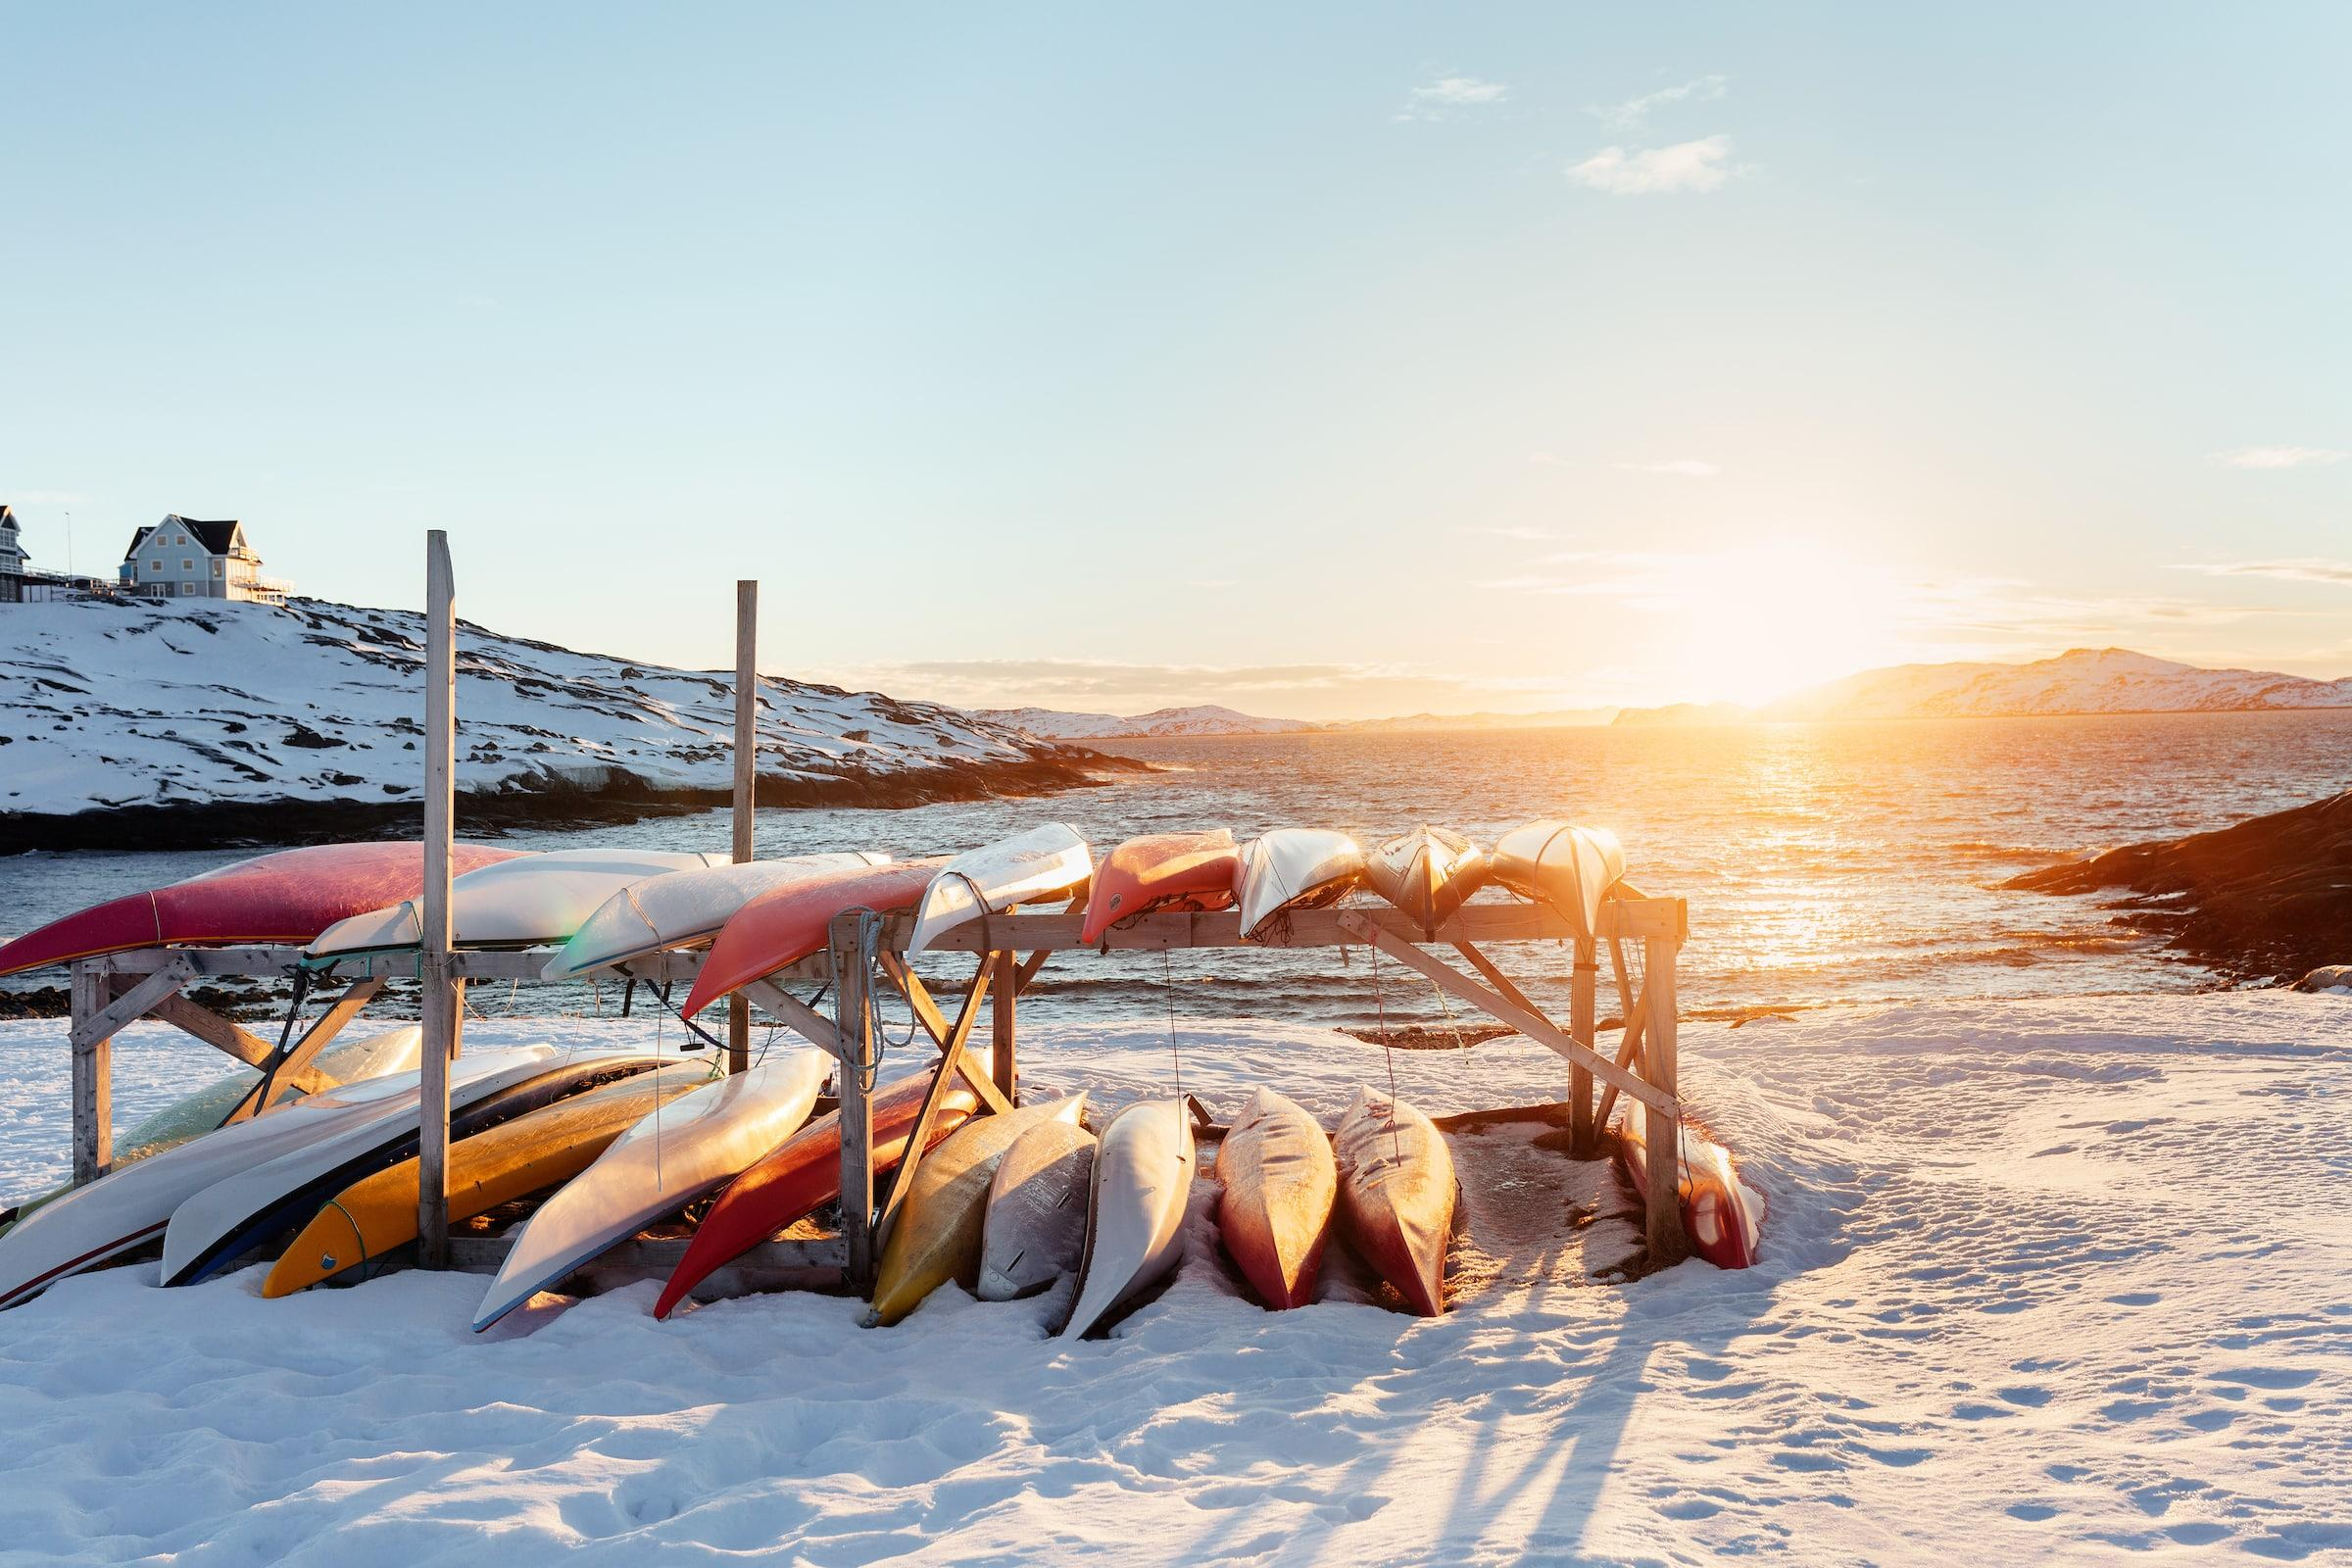 Backlit kayaks in a sunset scene in Nuuk in Greenland. Photo by Rebecca Gustafsson - Visit Greenland.